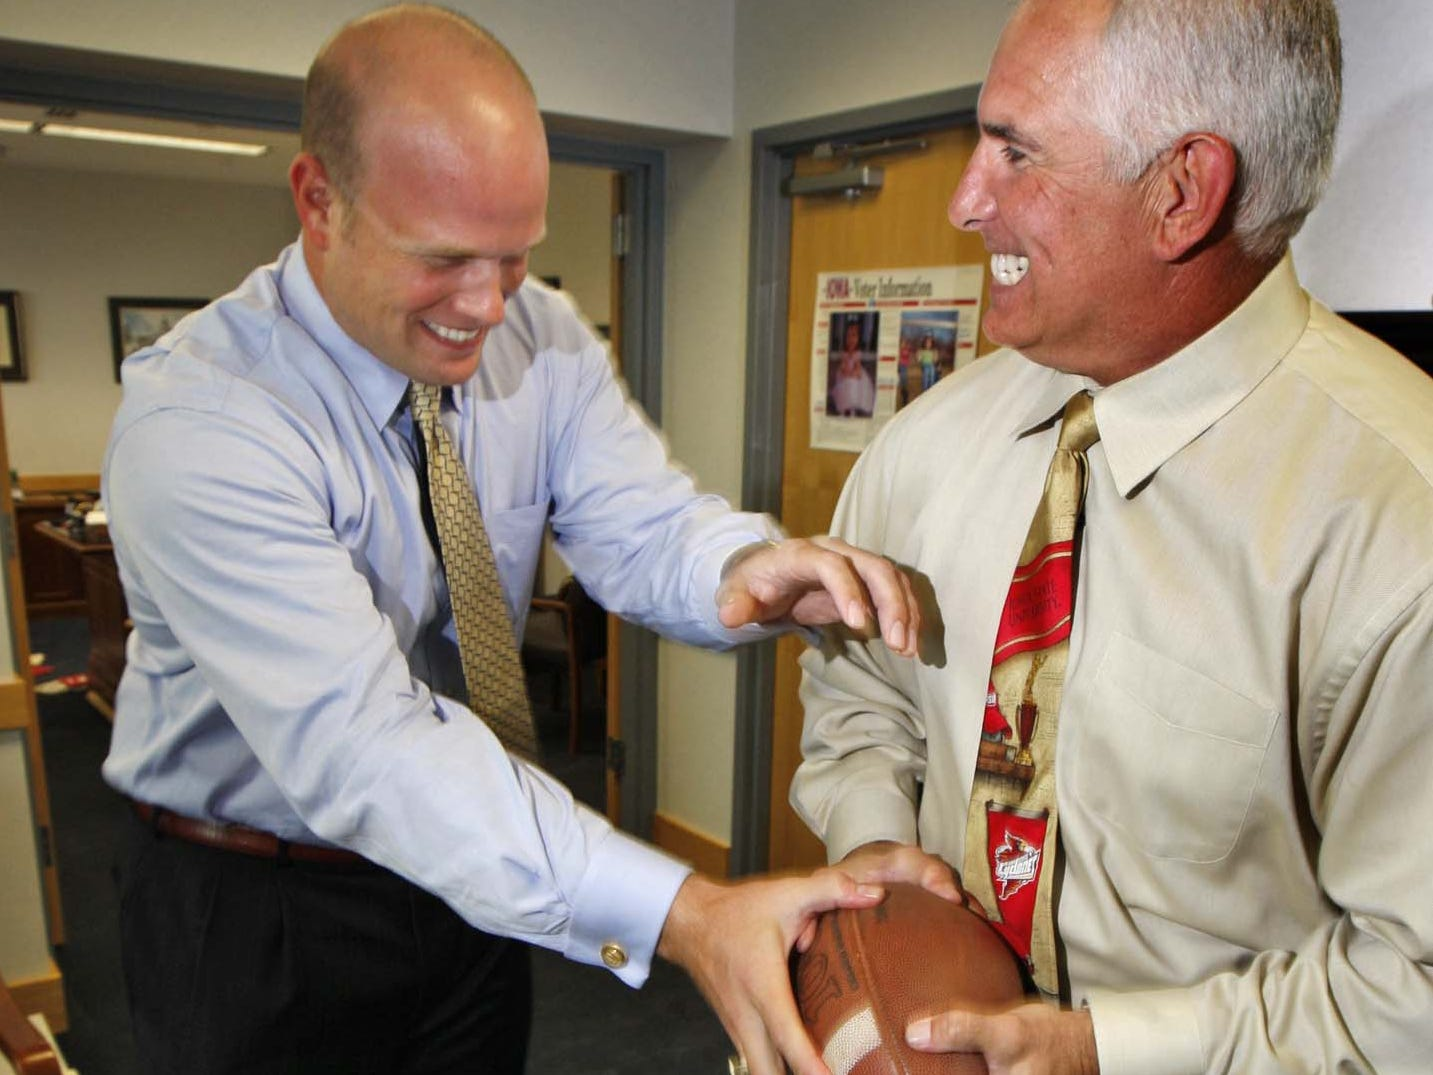 From September 2009: Former Iowa Hawkeyes tight end Matt Whitaker (left), now a U.S. Attorney for the Southern District of Iowa, playfully tries to take the football away from former Iowa State quarterback John Quinn, who is the Director of the division of criminal investigations in Iowa.